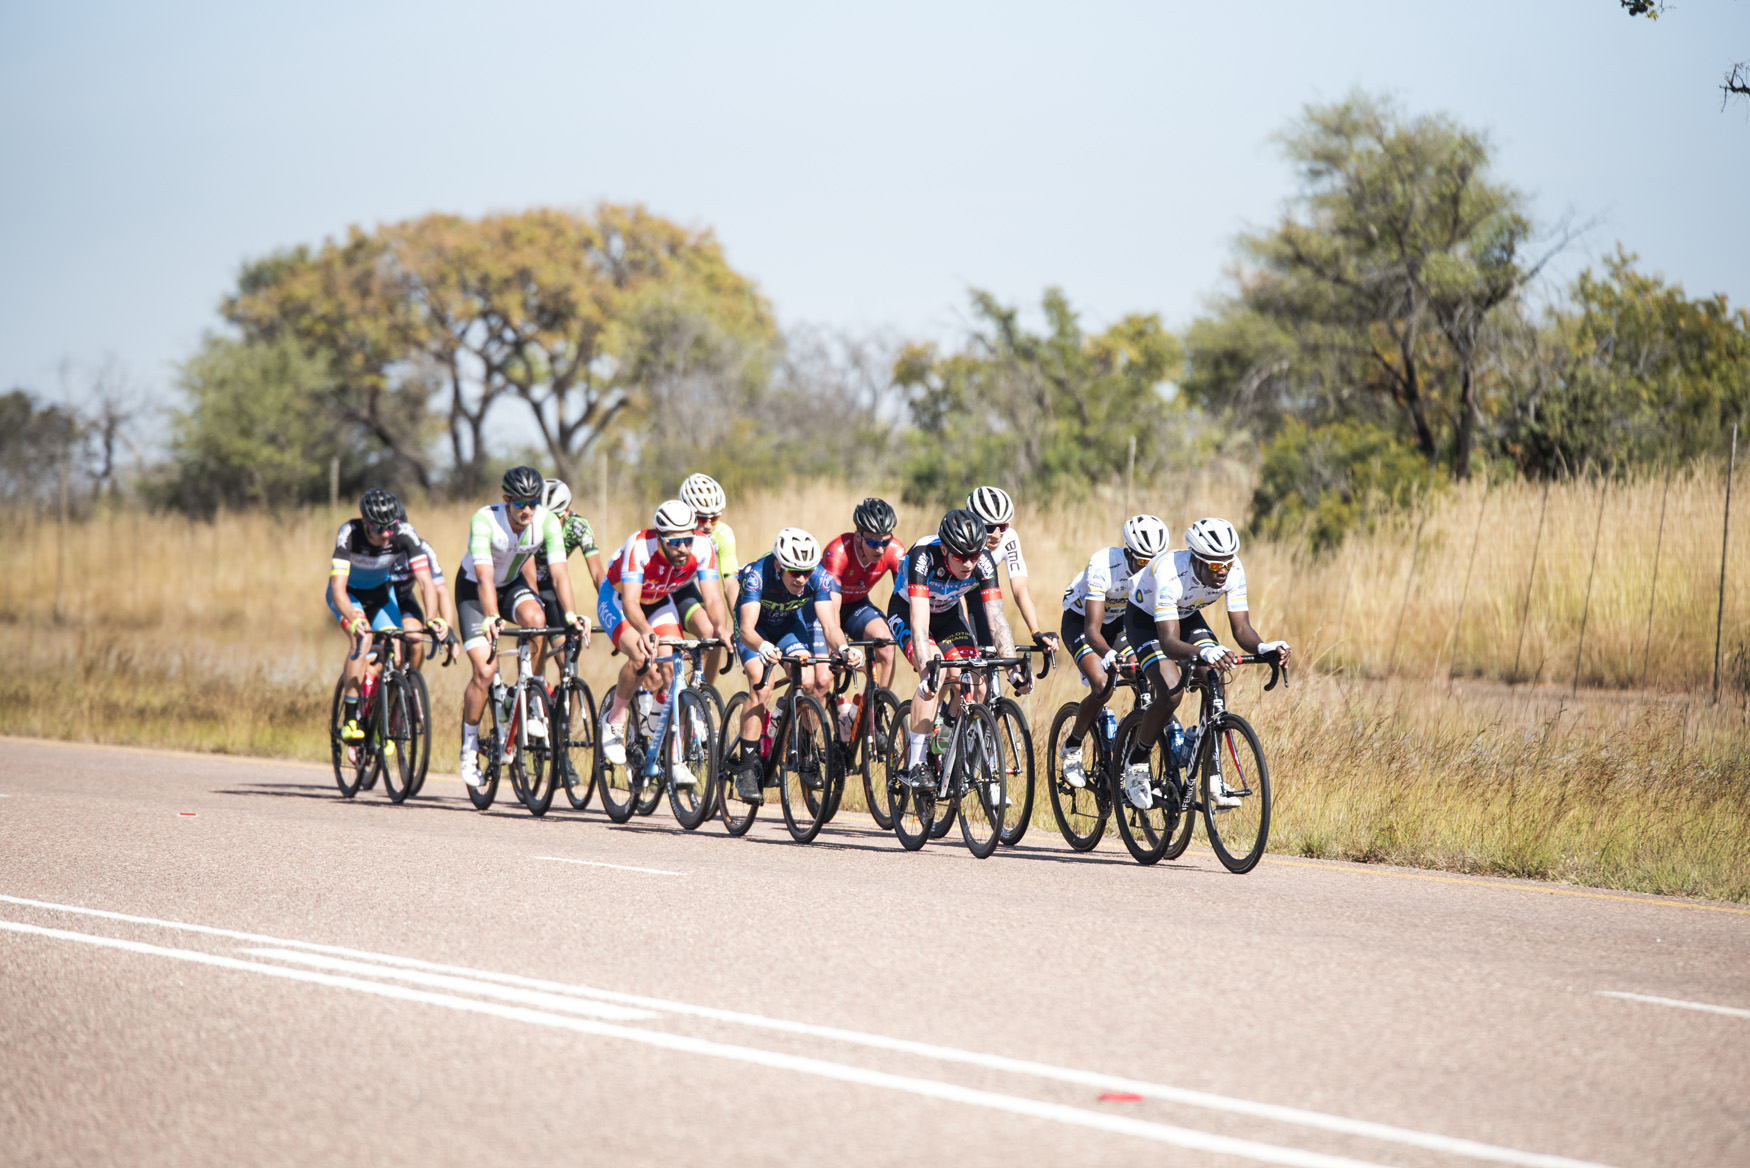 The final 12 riders in the lead group had representation from ProTouch Continental, Team Dimension Data Continental Team, TEG Continental, Officeguru Racing, Proud Beginners and Velo Schils from Bela Bela to Polokwane on Stage 1 of the 2019 Tour de Limpopo (UCI 2.2) from 14-18 May © Tour de Limpopo/Andrew Mc Fadden